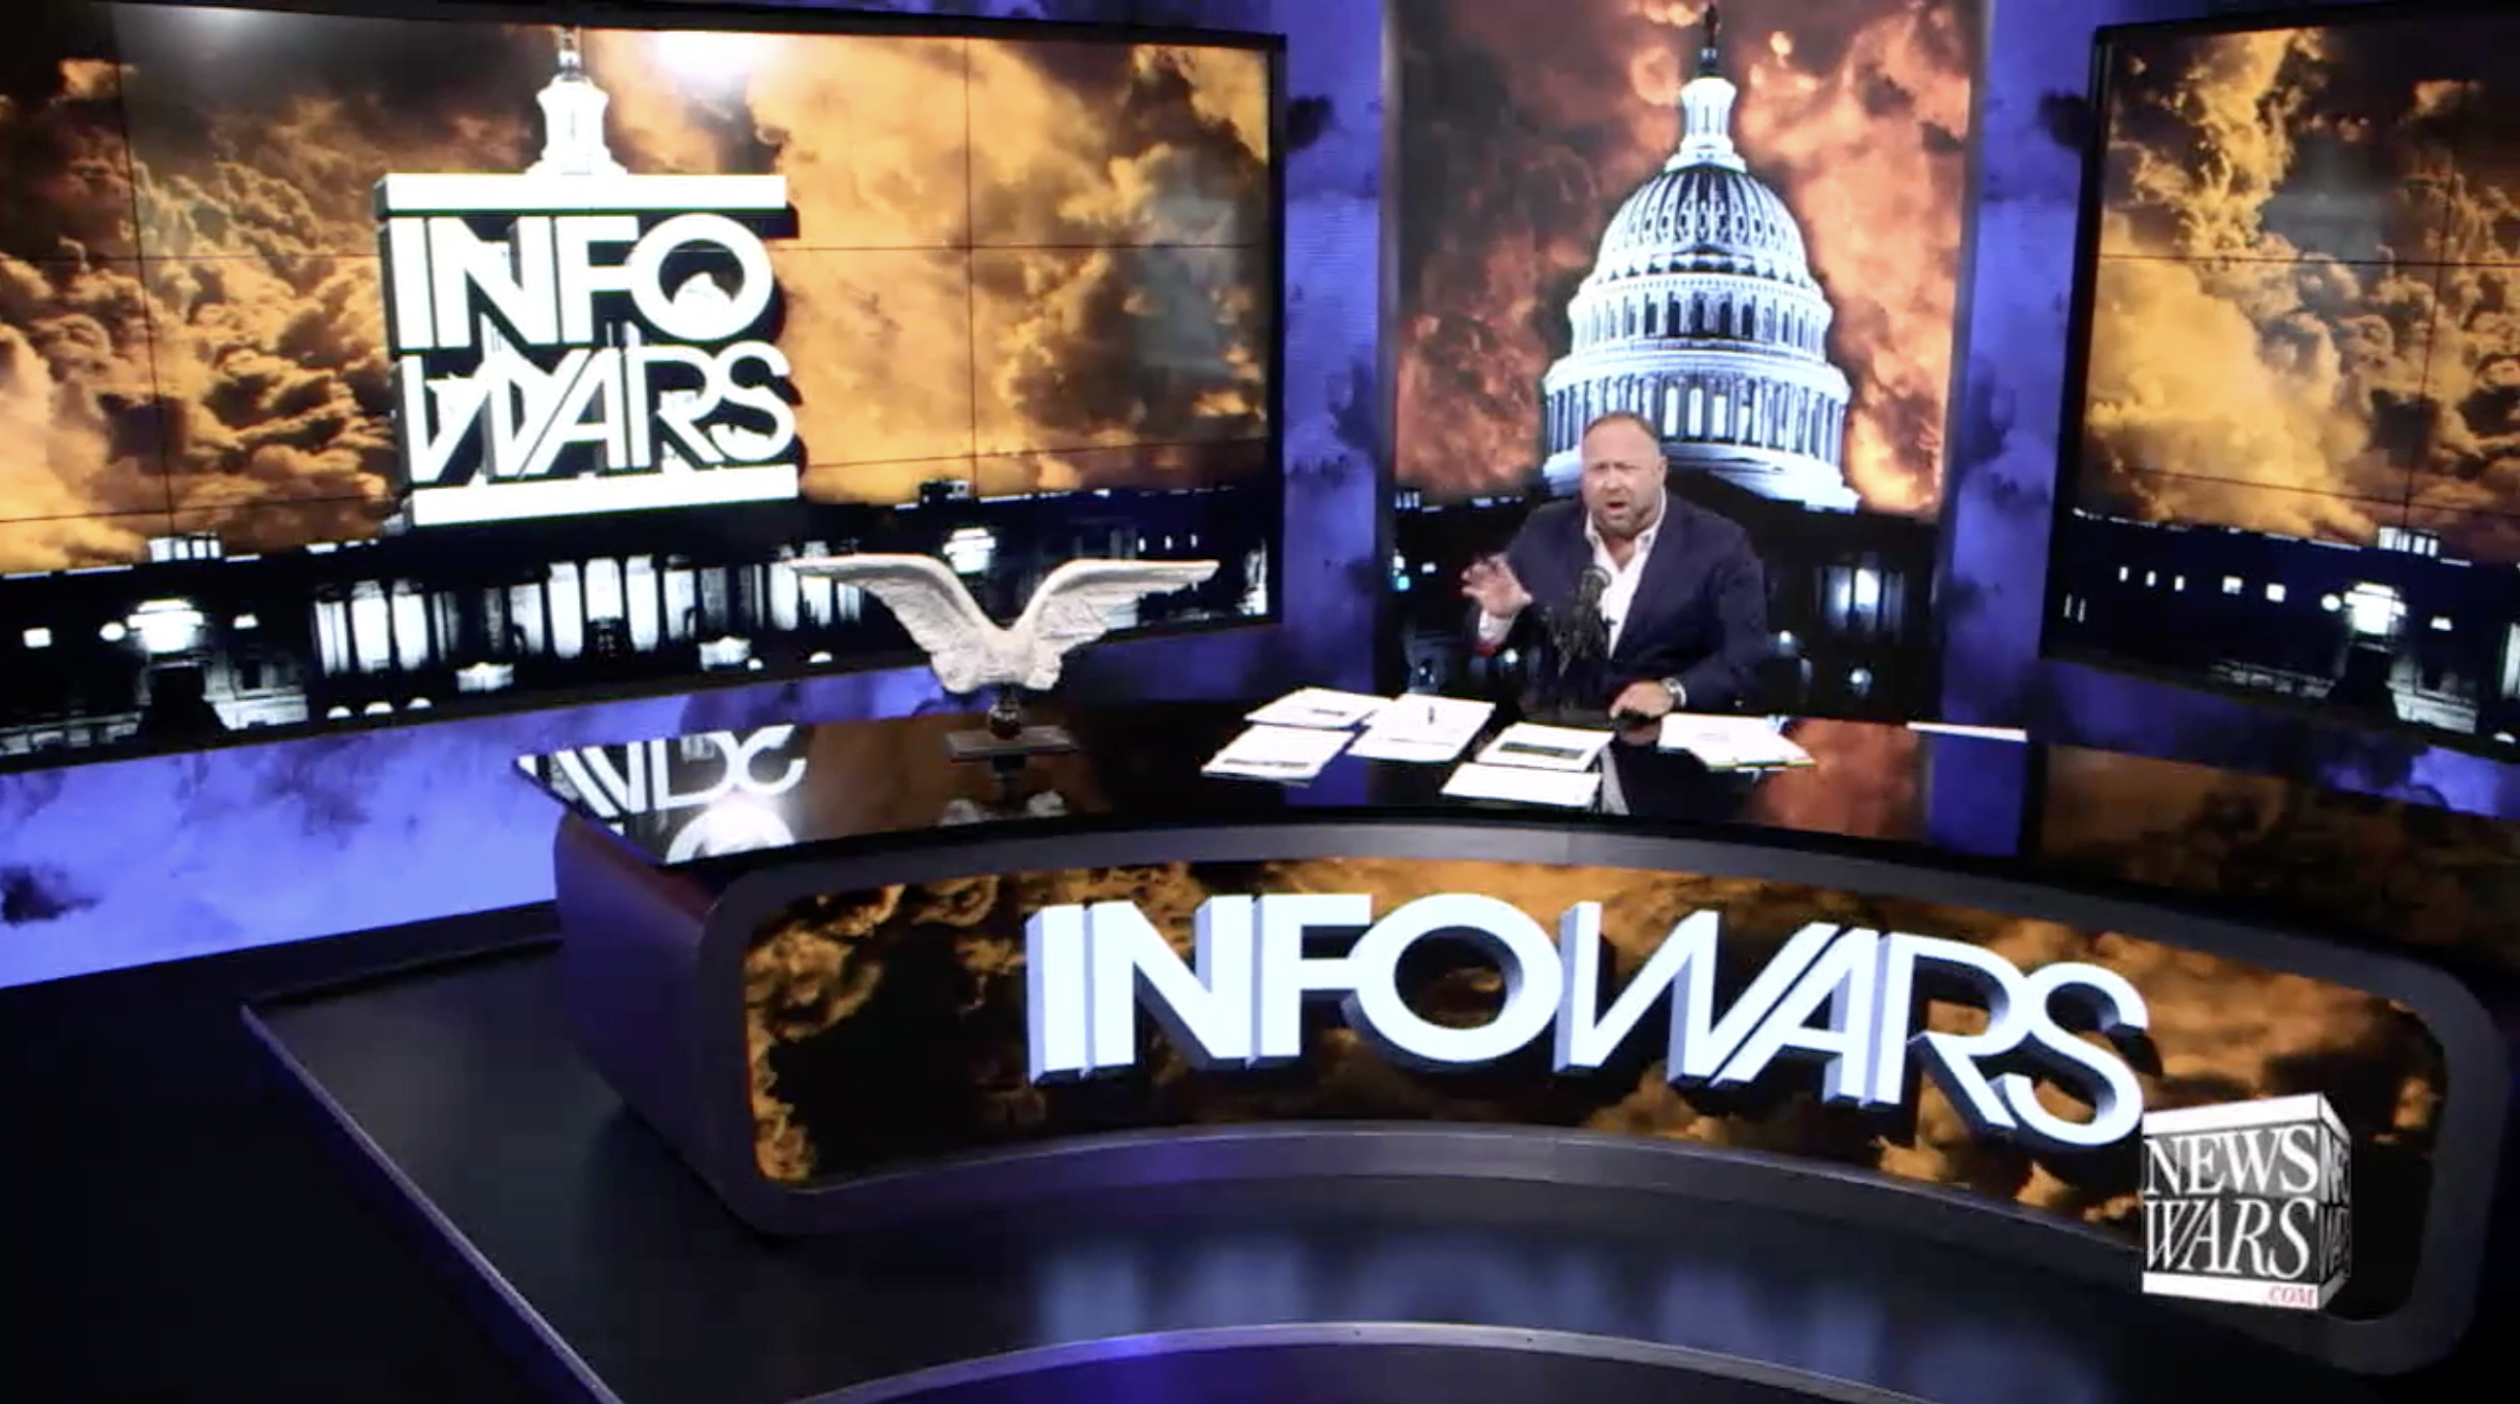 Alex Jones Infowars Studio Angel wings Black Lives Matter July 12th 2020